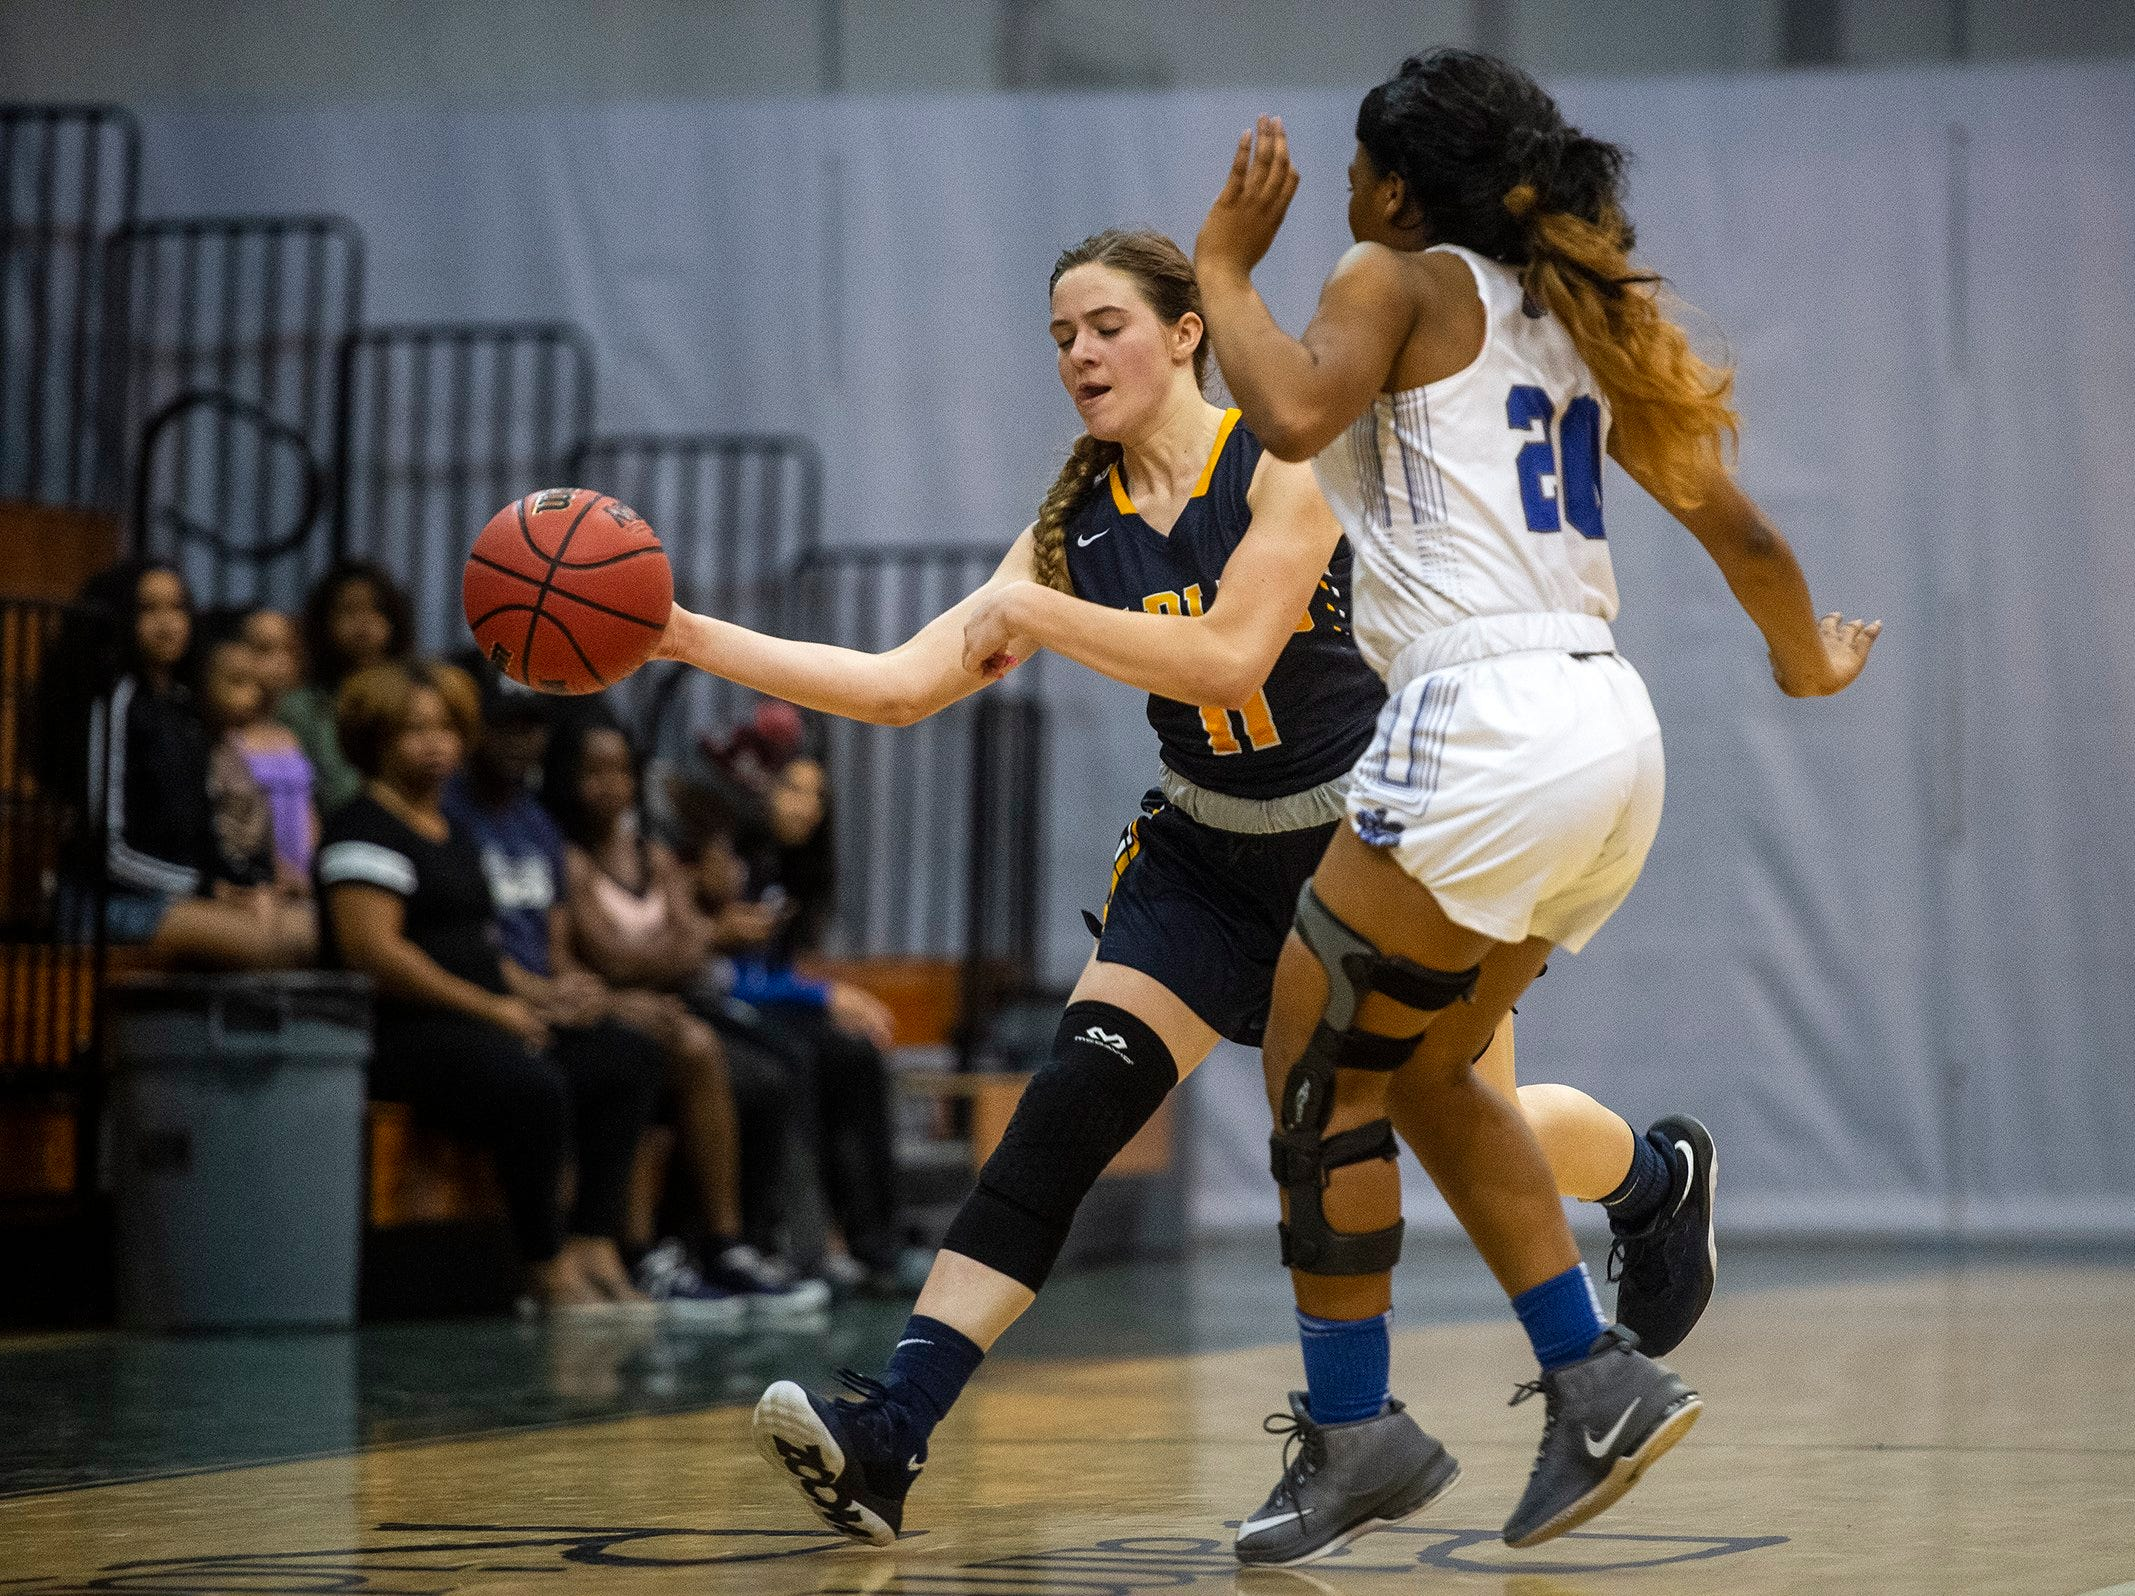 Naples High School's Molly Richards tries to get past defense during the Class 7A-District 12 Championship against Barron Collier High School in Naples, Fla., on Friday, Feb. 8, 2019.